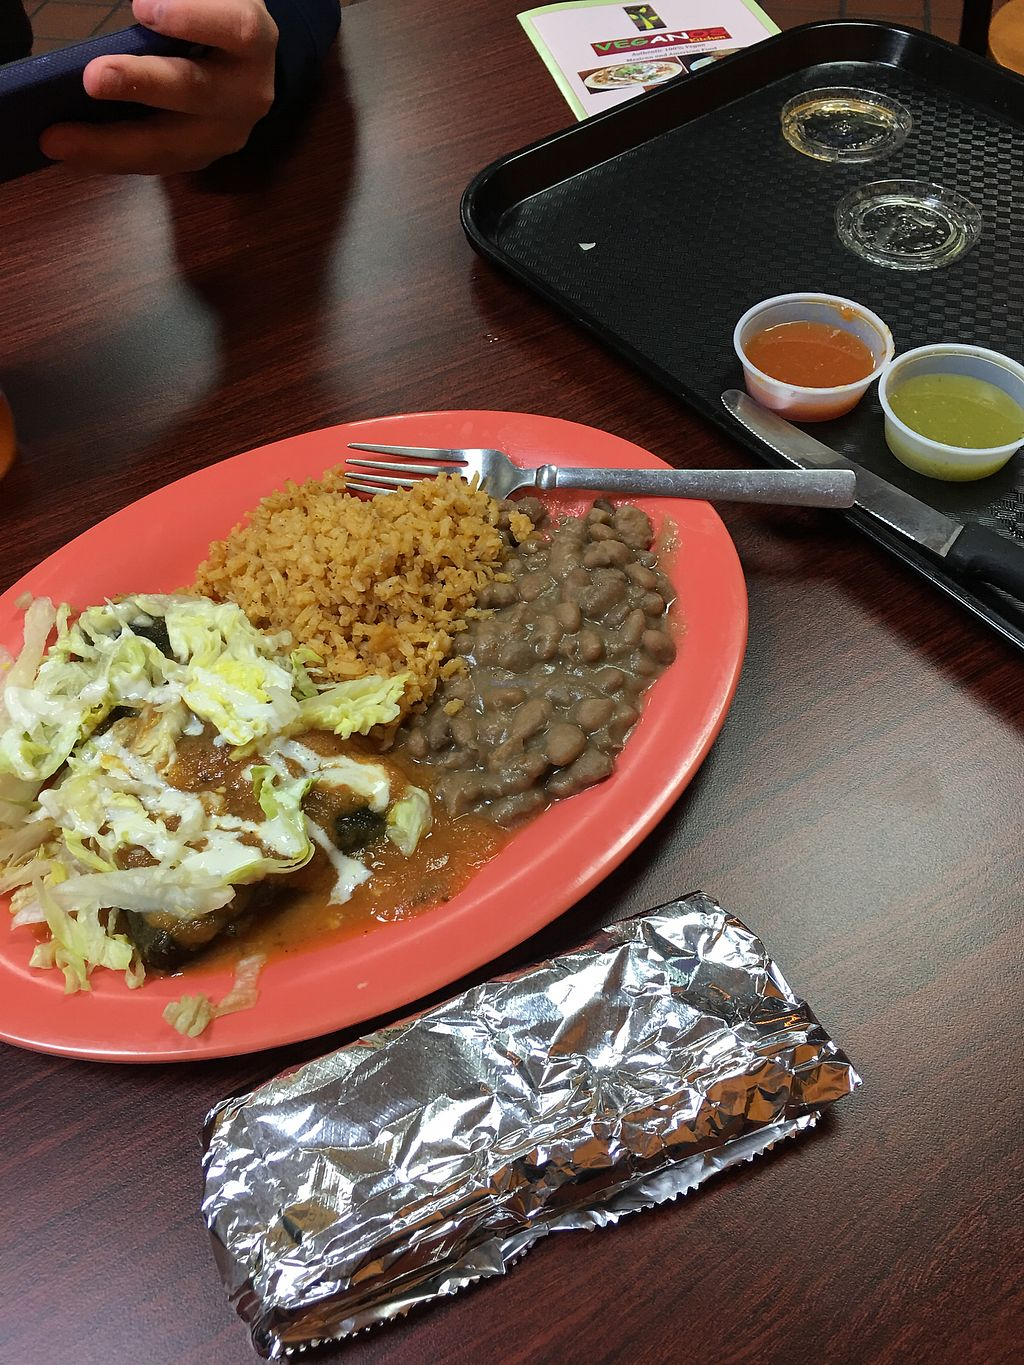 """Photo of Veganos Kitchen  by <a href=""""/members/profile/lvasquared"""">lvasquared</a> <br/>Very delicious Chile Relleno  <br/> February 13, 2018  - <a href='/contact/abuse/image/107317/358664'>Report</a>"""